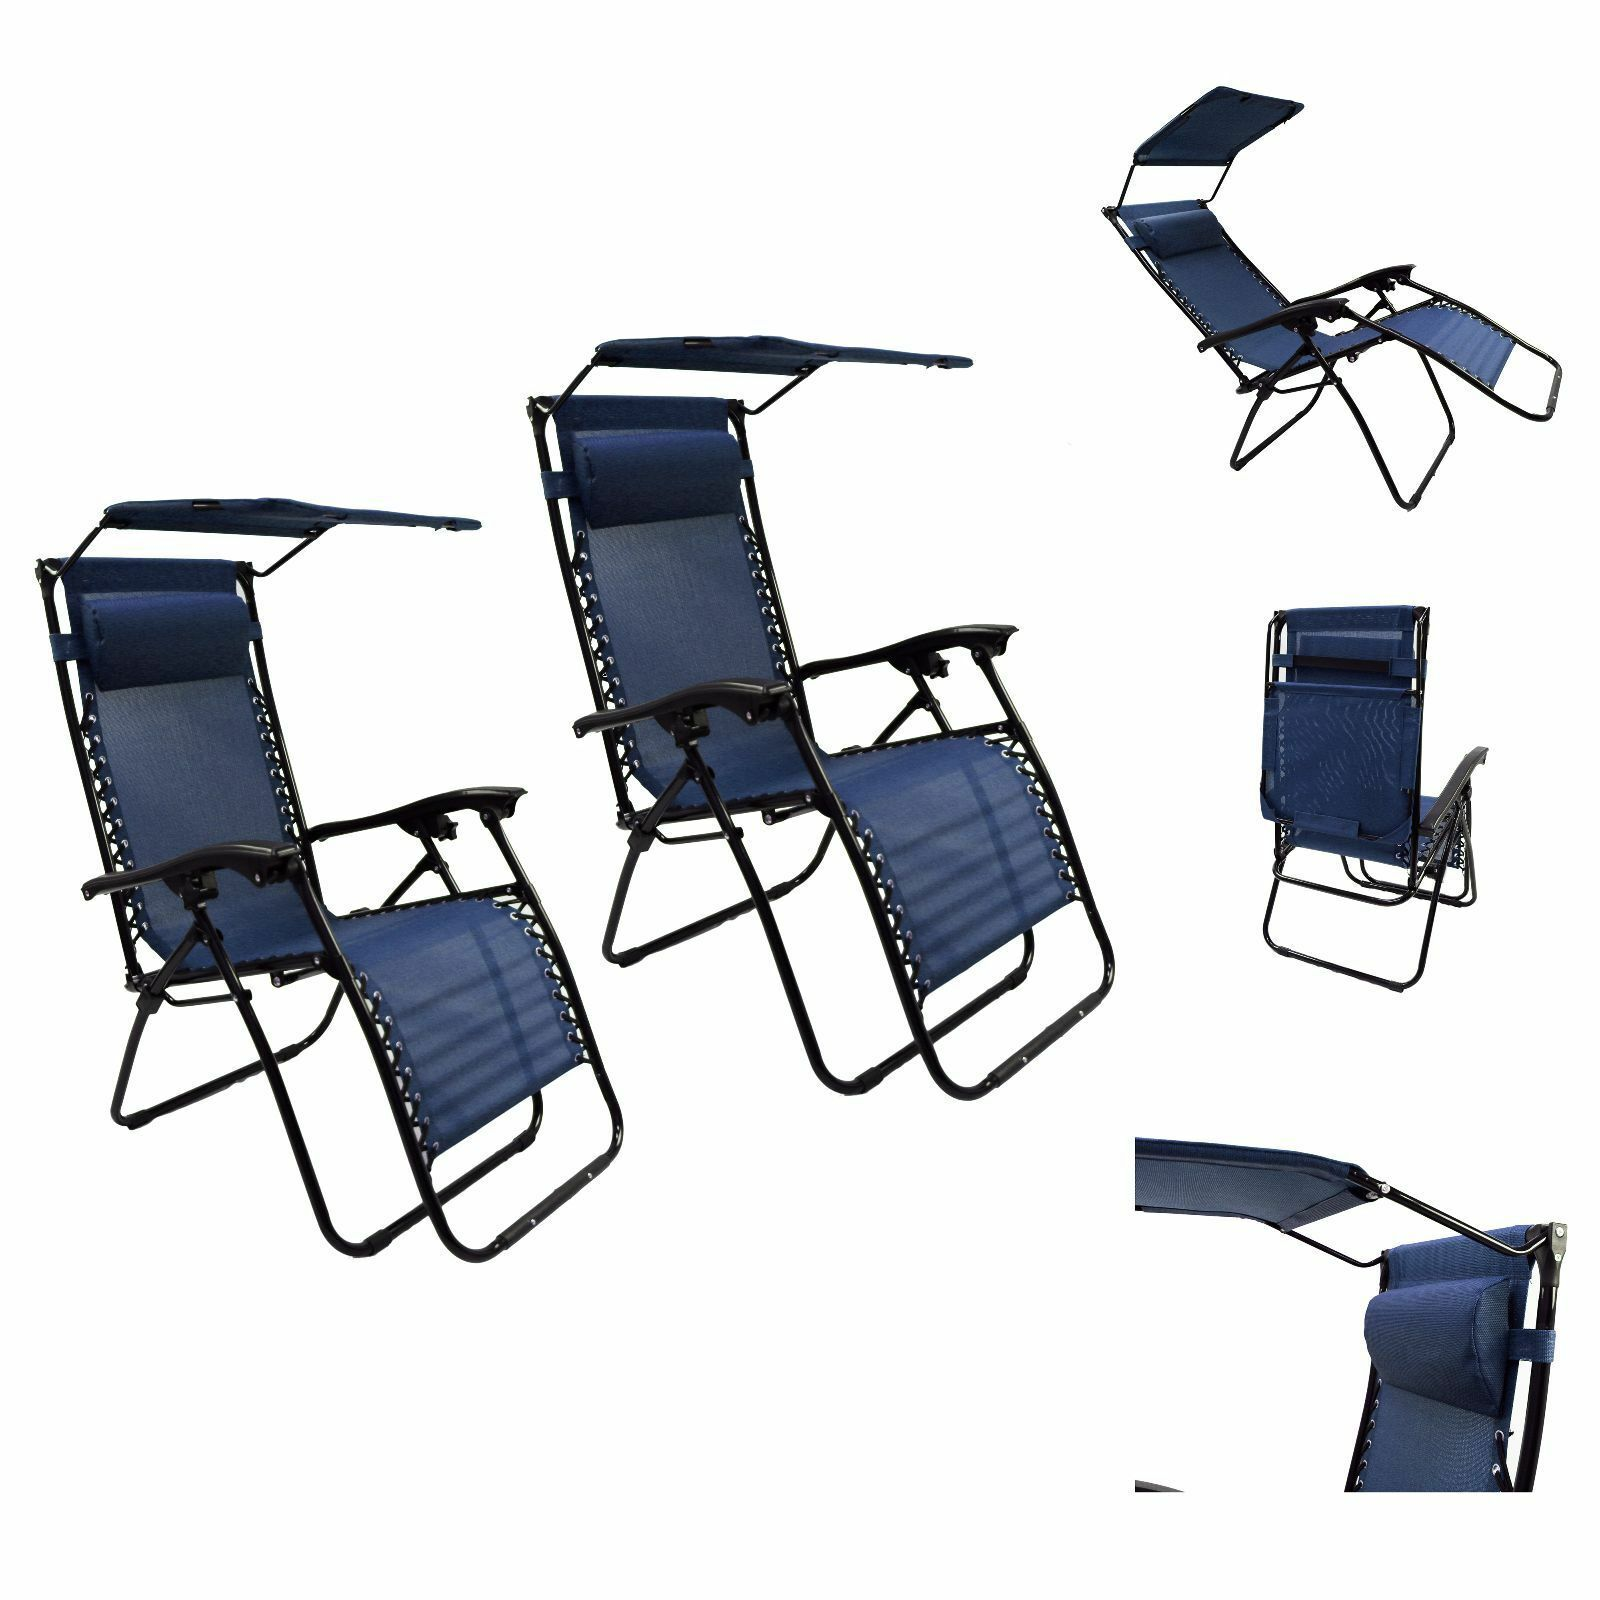 Outdoor Portable Chairs 2pc Lounge Patio Chairs Outdoor Yard Zero Gravity Folding